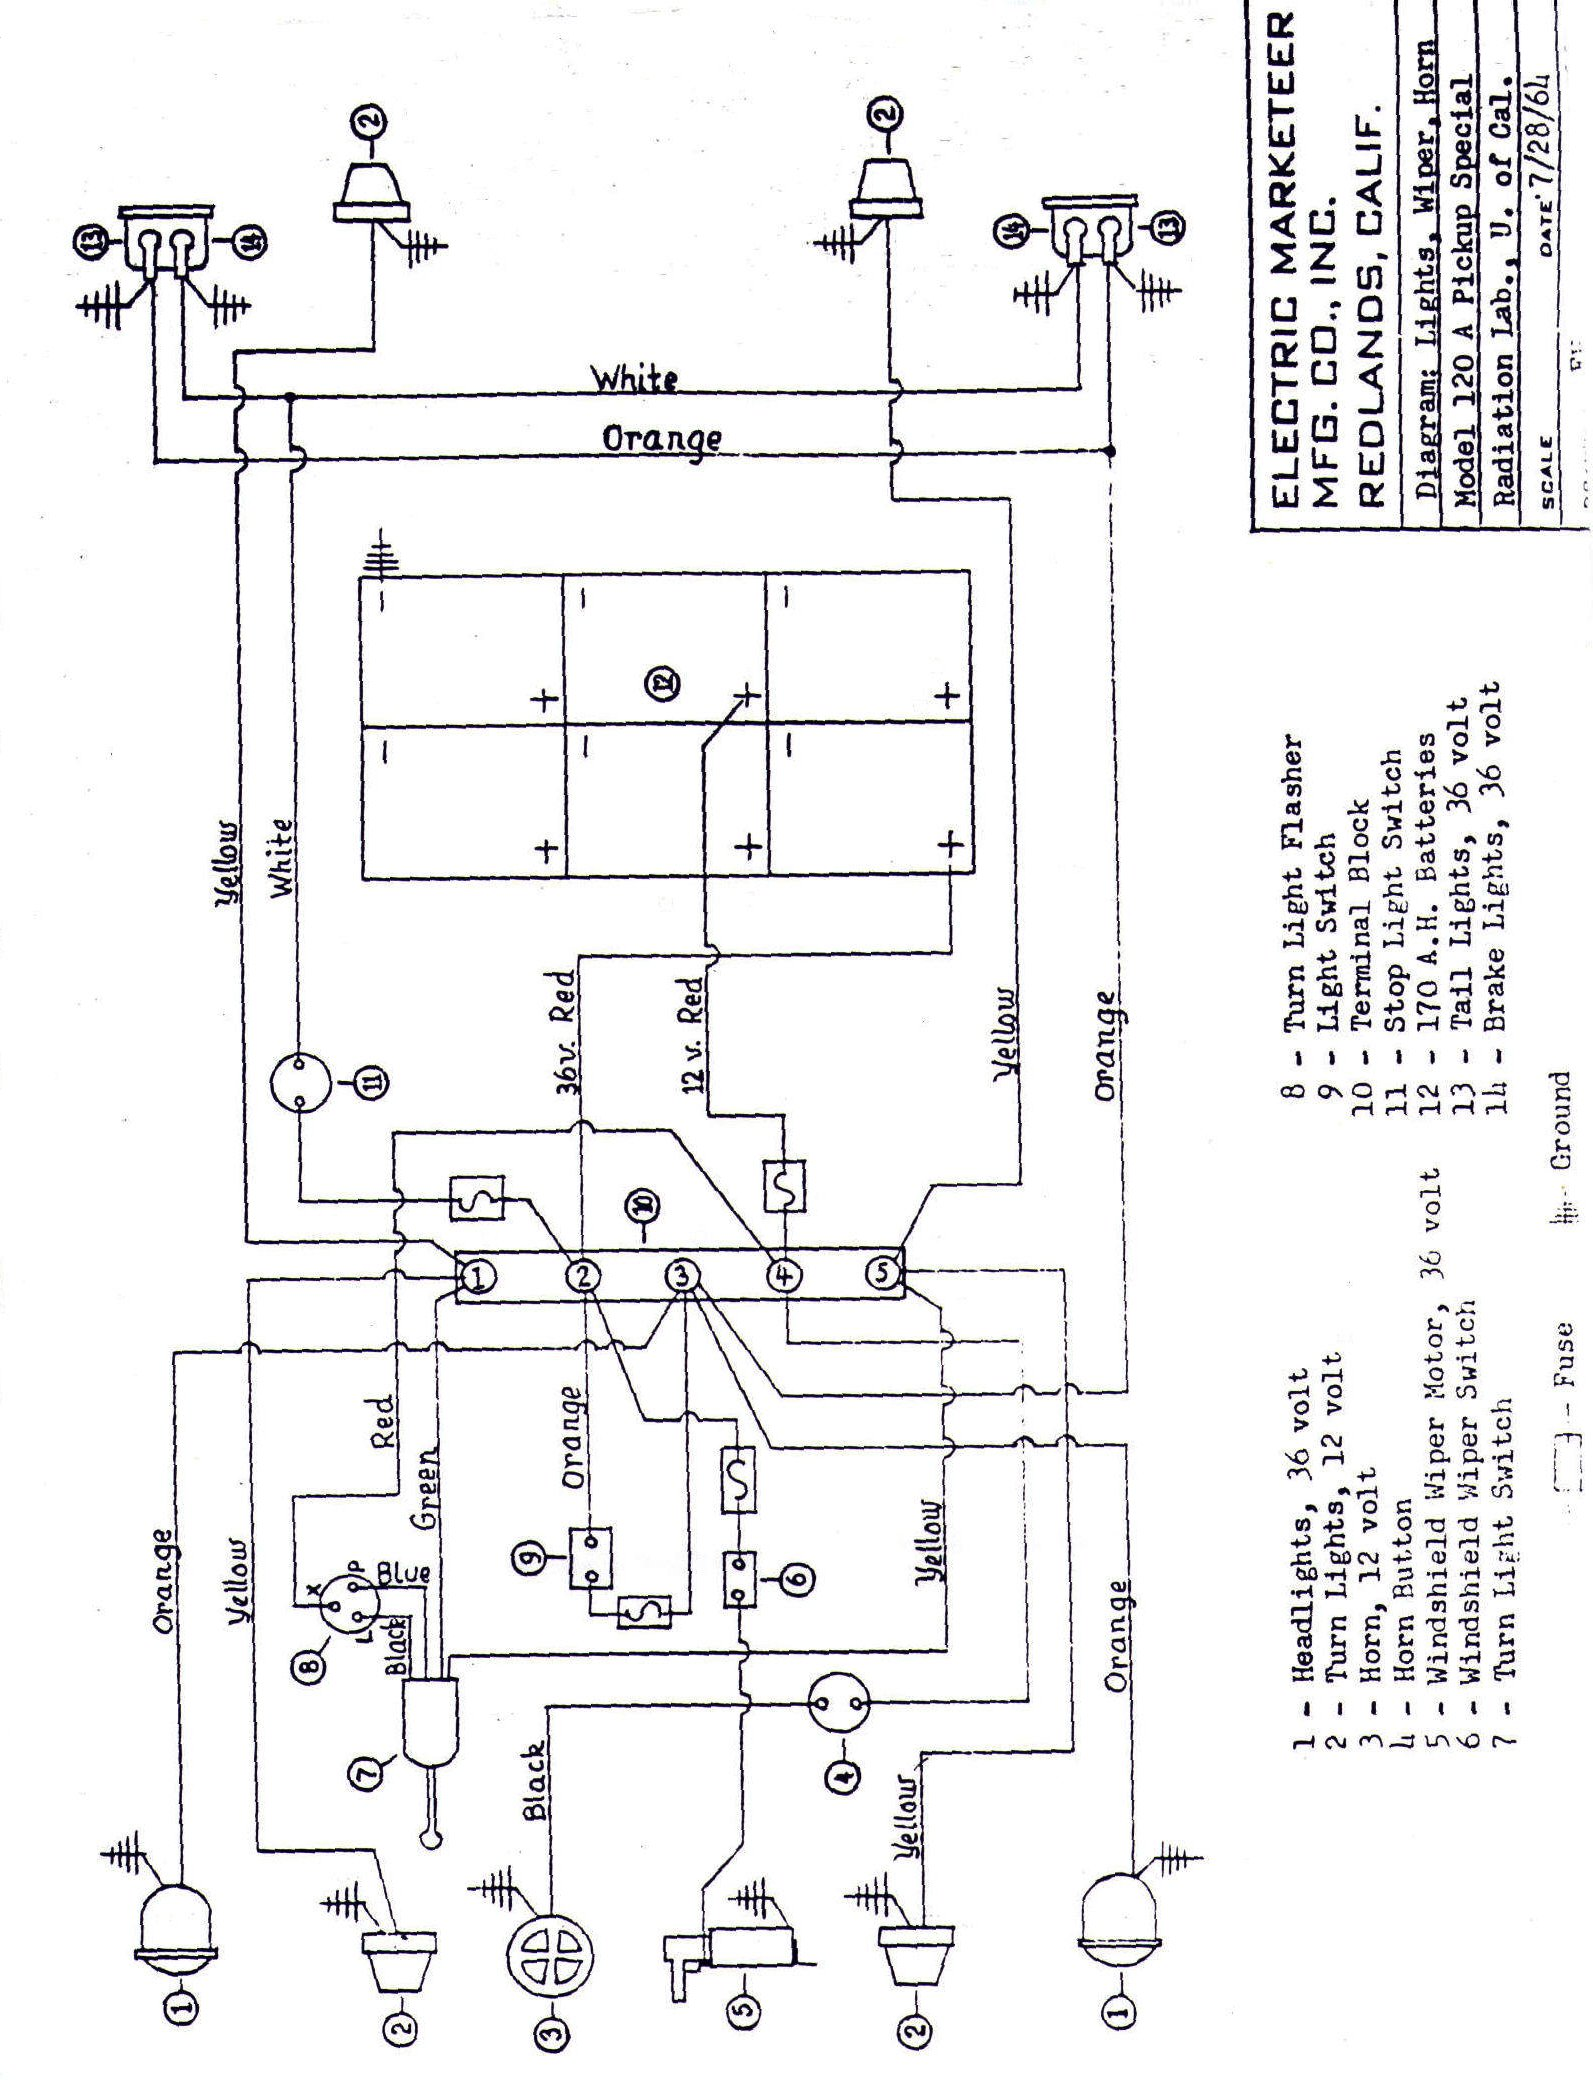 melex electric golf cart wiring diagram for melex 512 golf cart melex electric golf cart wiring diagram #32